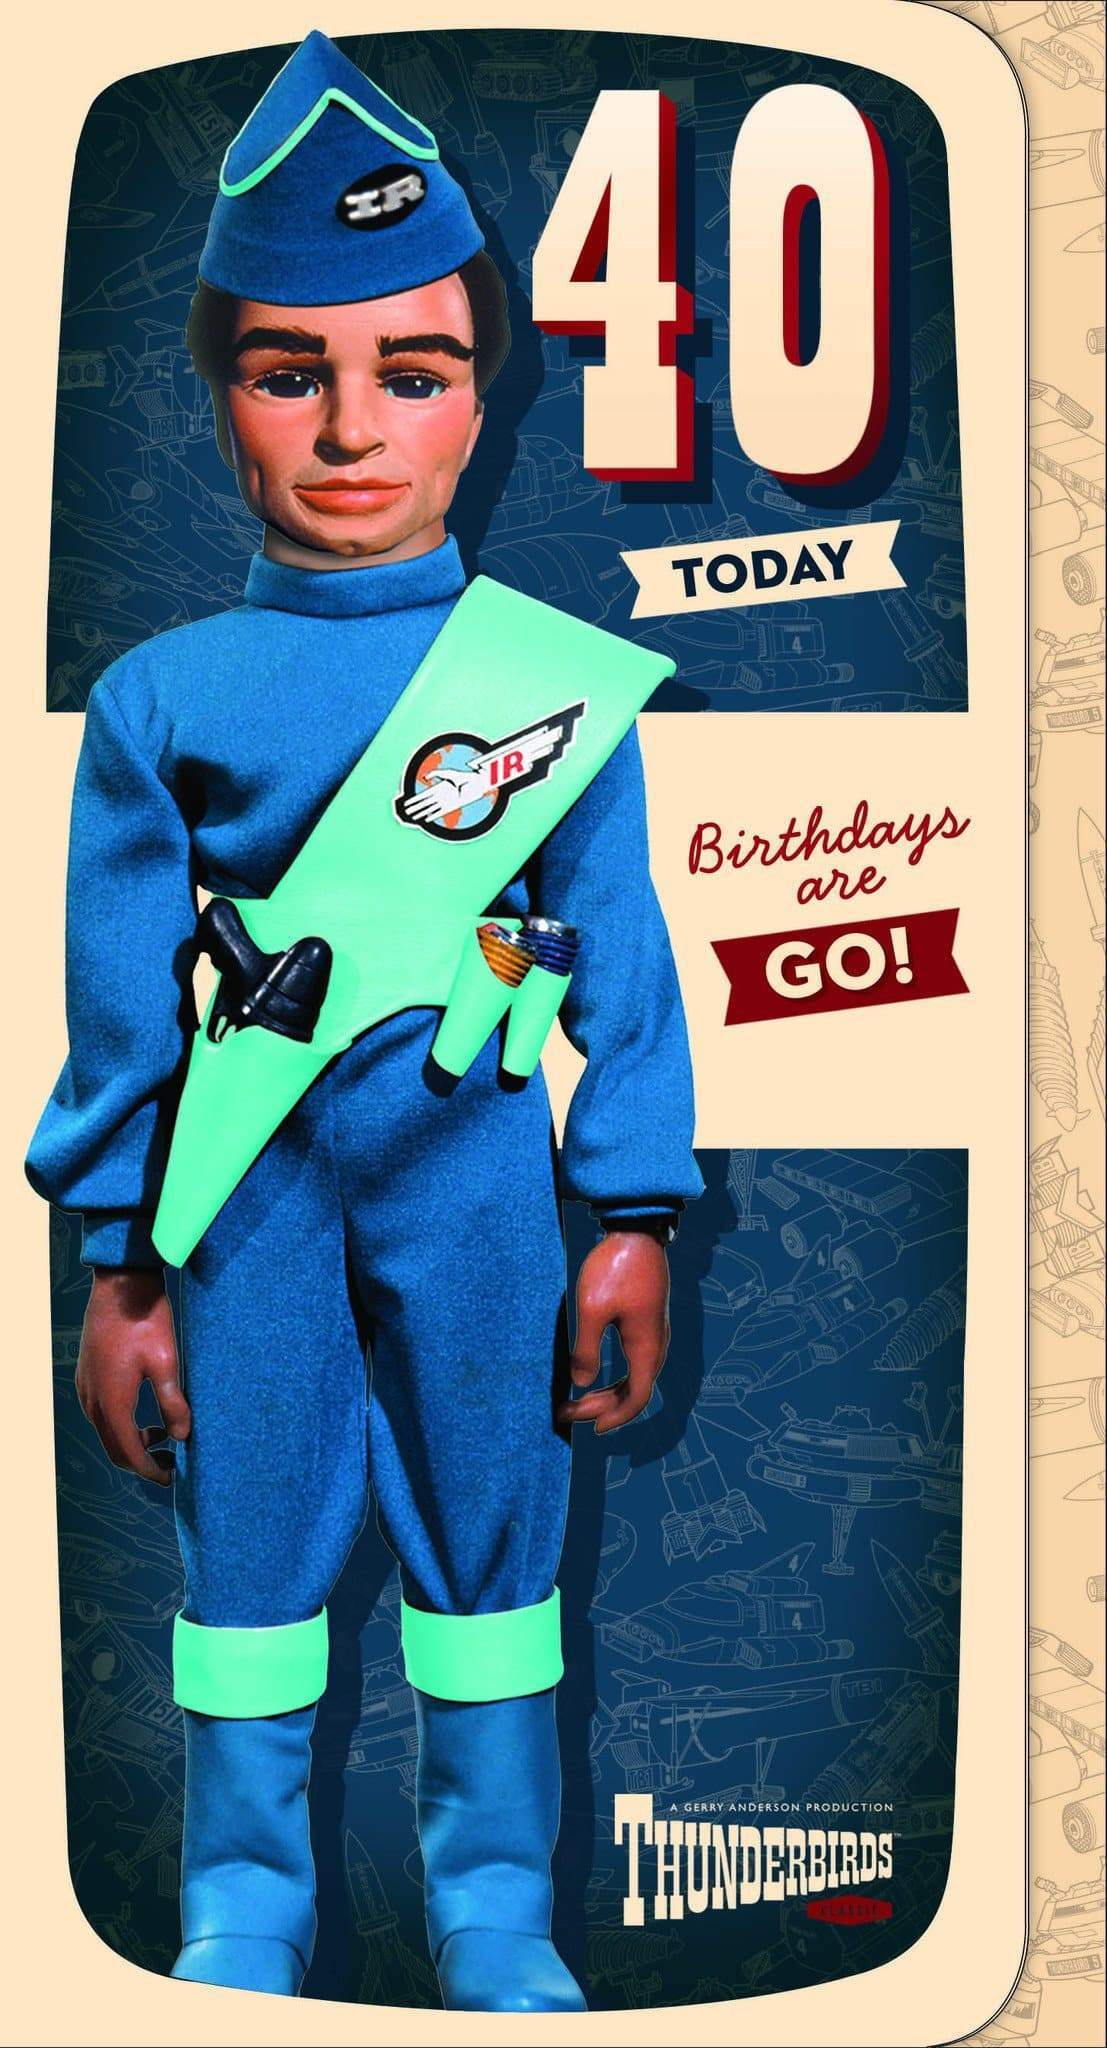 Thunderbirds Age 40 Birthday Card - The Gerry Anderson Store